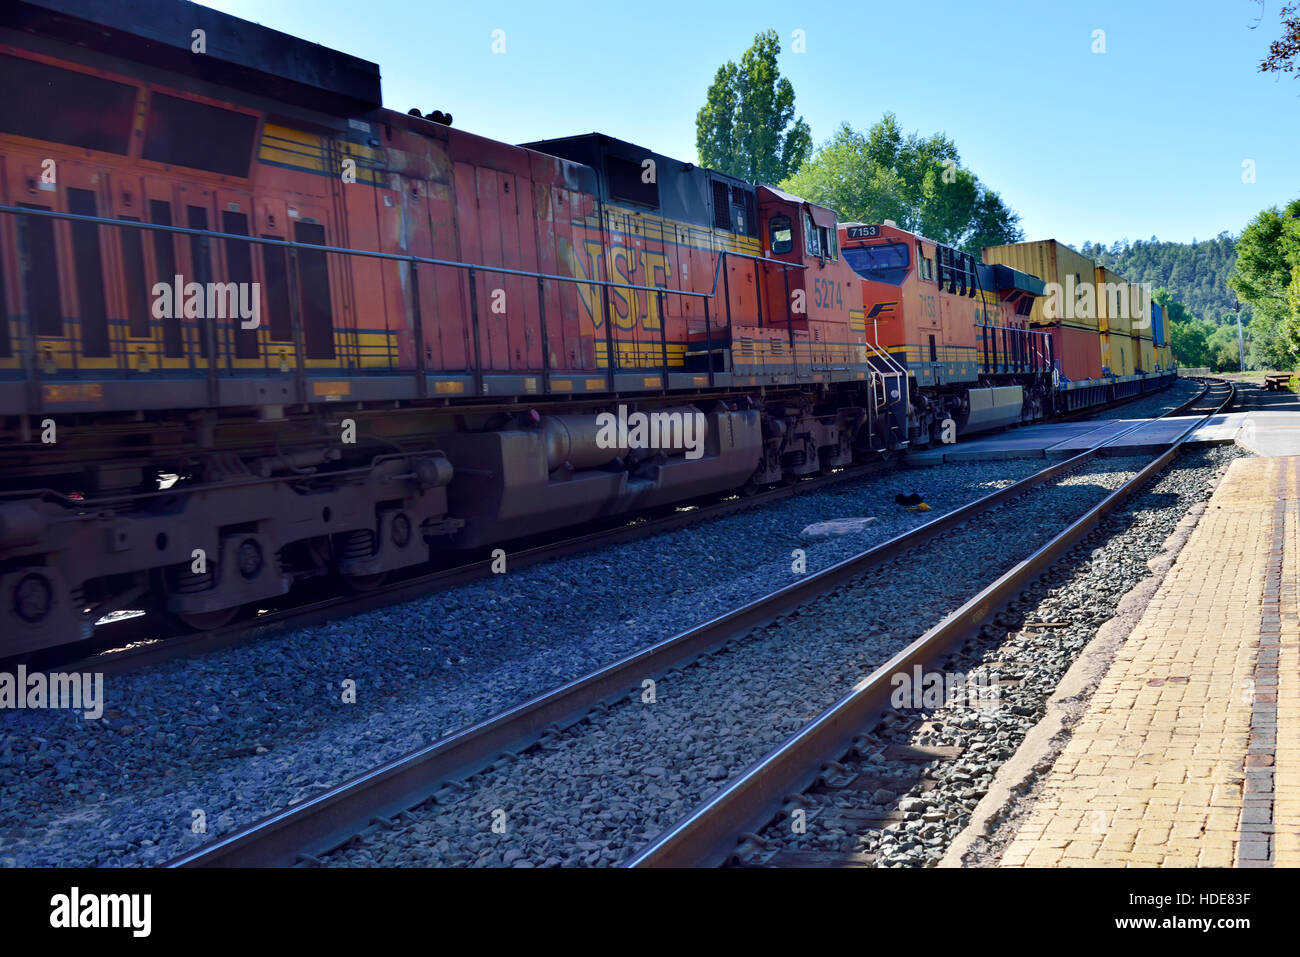 Multiple BNSF diesel locomotives in the middle of long train of shipping containers at Flagstaff, Arizona - Stock Image